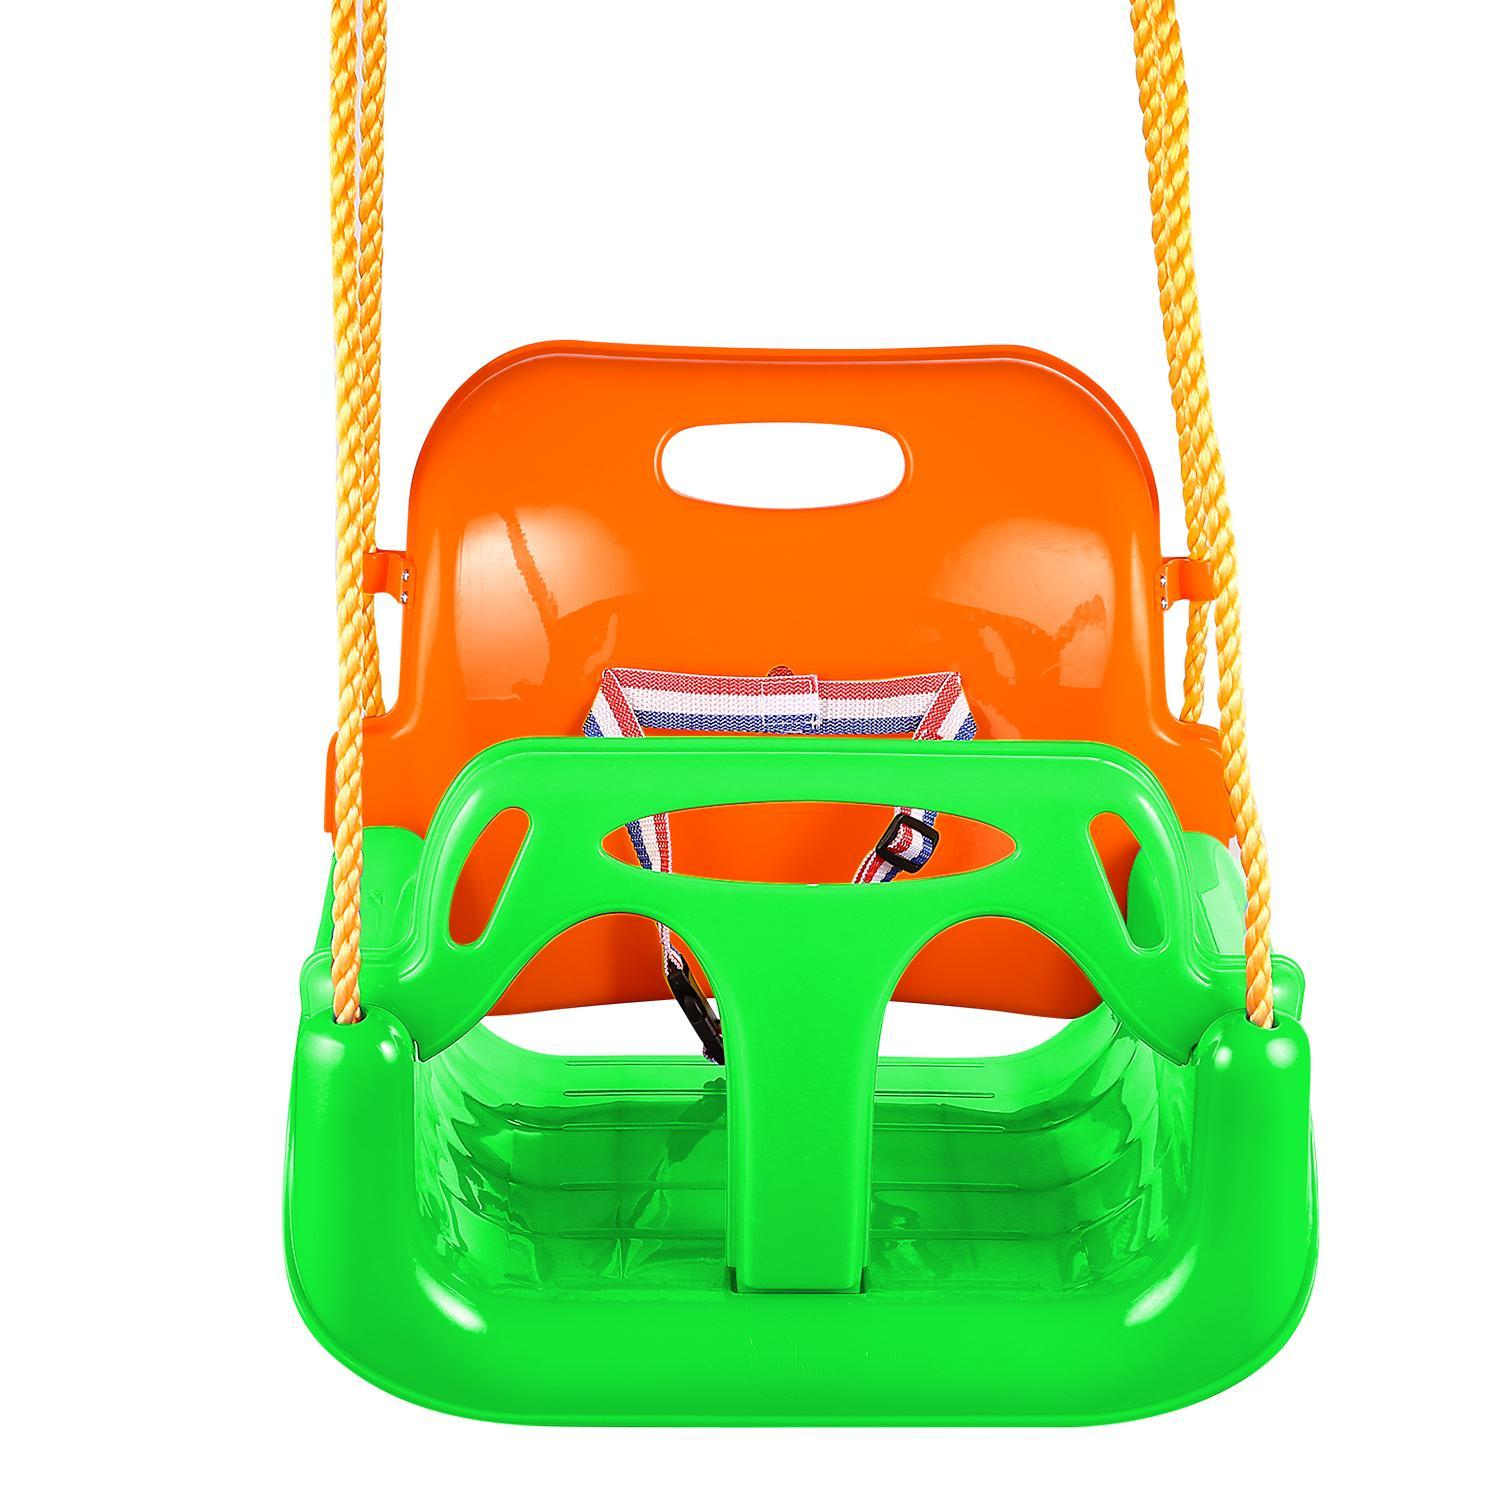 3 In 1 High Back Toddler Swing Baby Outdoor Swing Seat Seat Heavy Duty Chain Playground Swing Set HFON